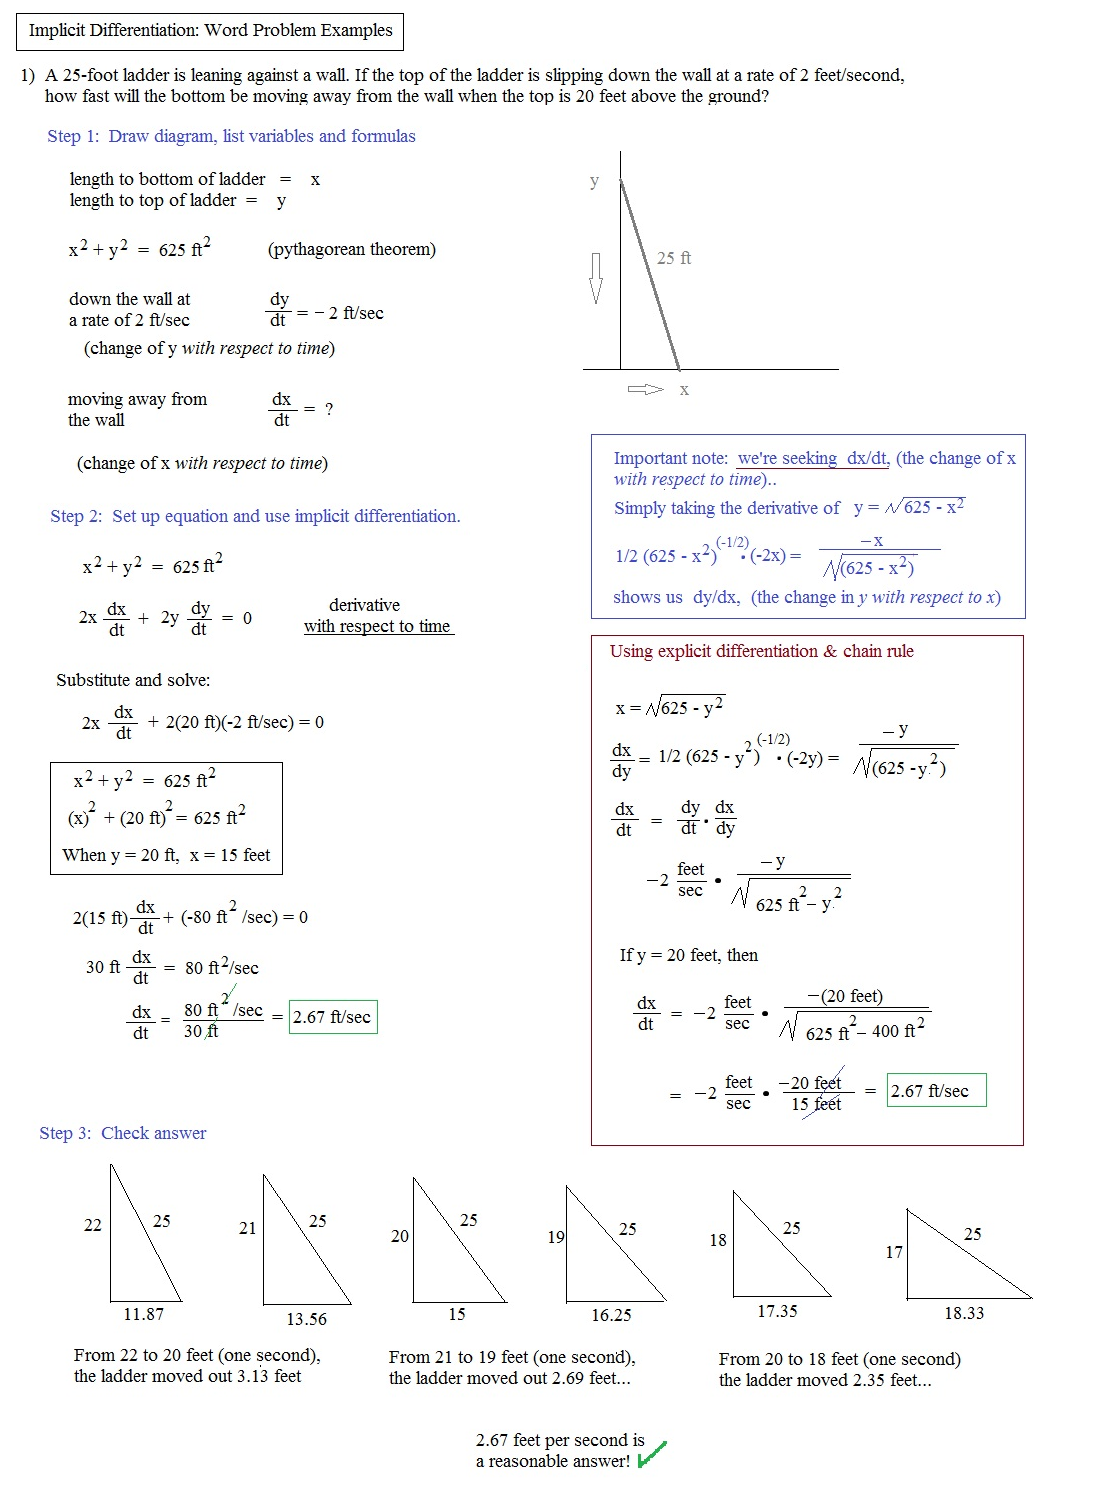 Worksheets Implicit Differentiation Worksheet math plane implicit differentiation notes and examples word problem example